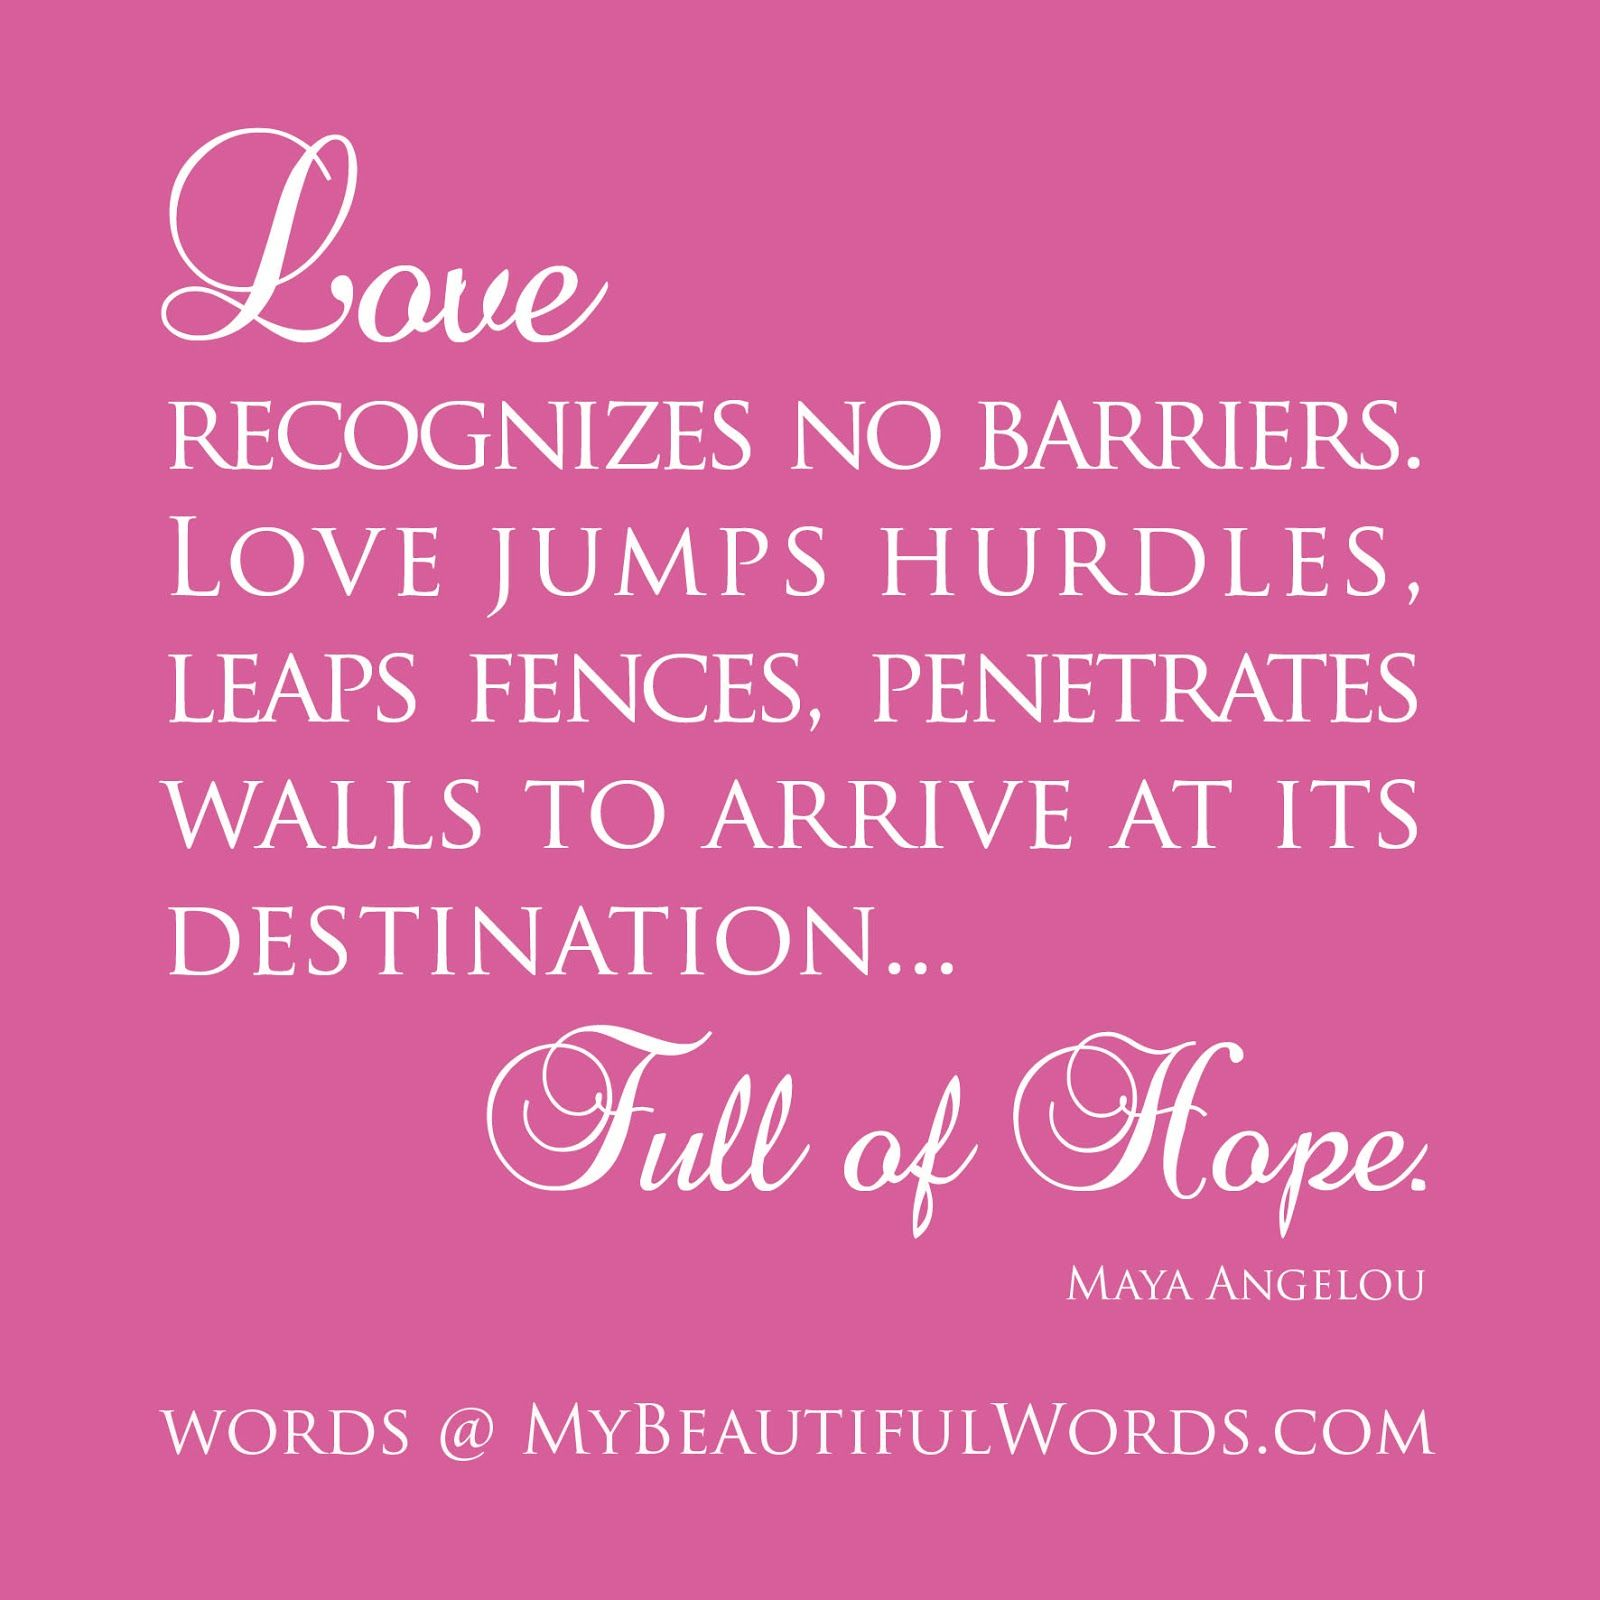 Maya Angelou Love Quotes Love Recognizes No Barrierslove Jumps Hurdles Leaps Fences